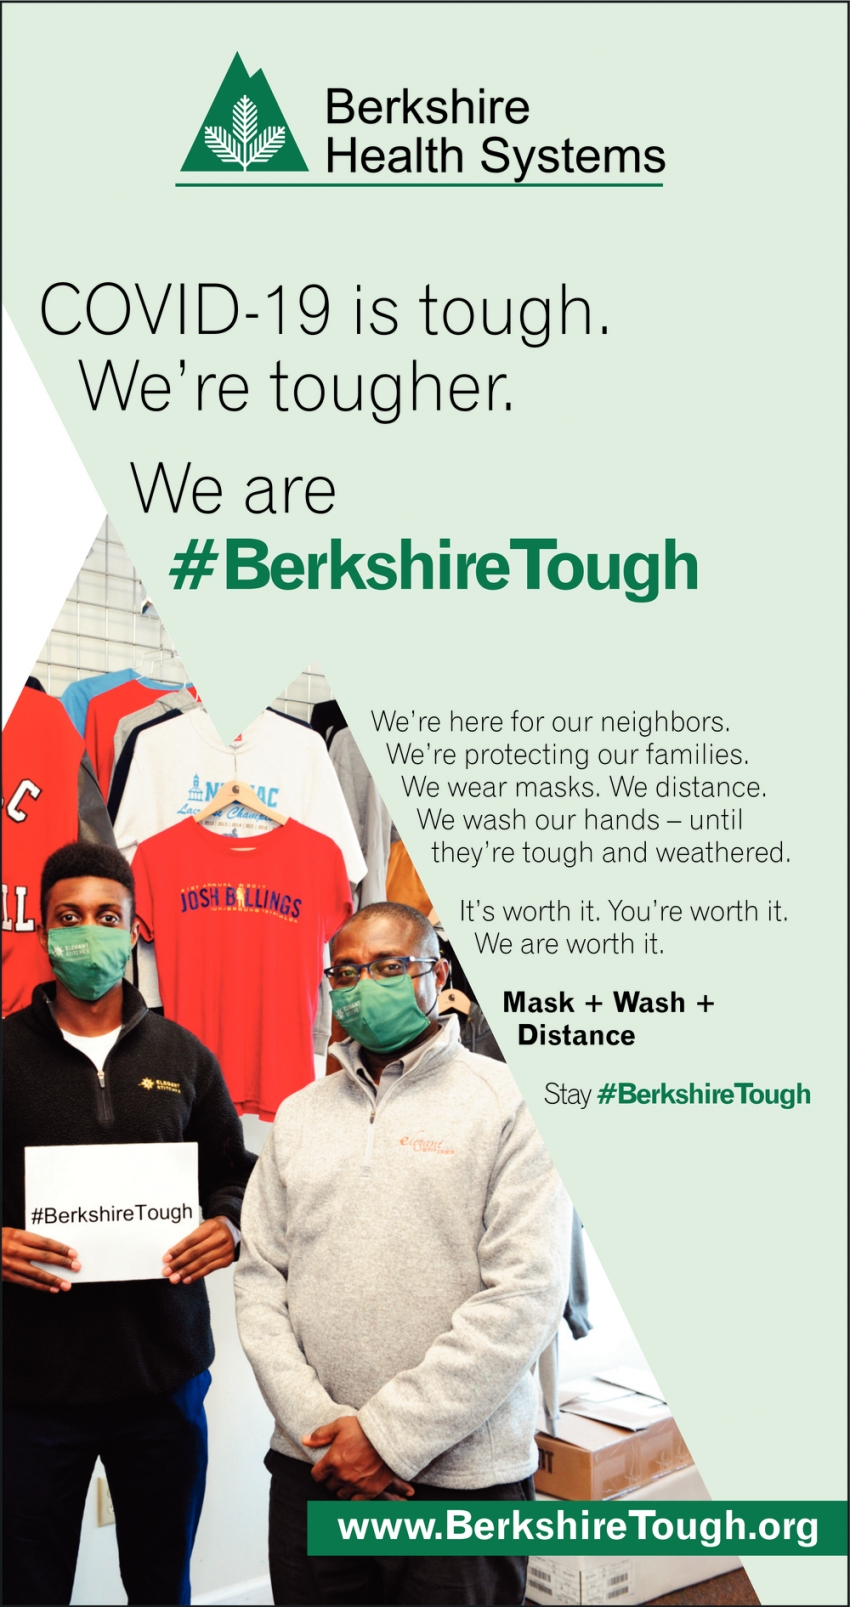 We Are #BerkshireTough